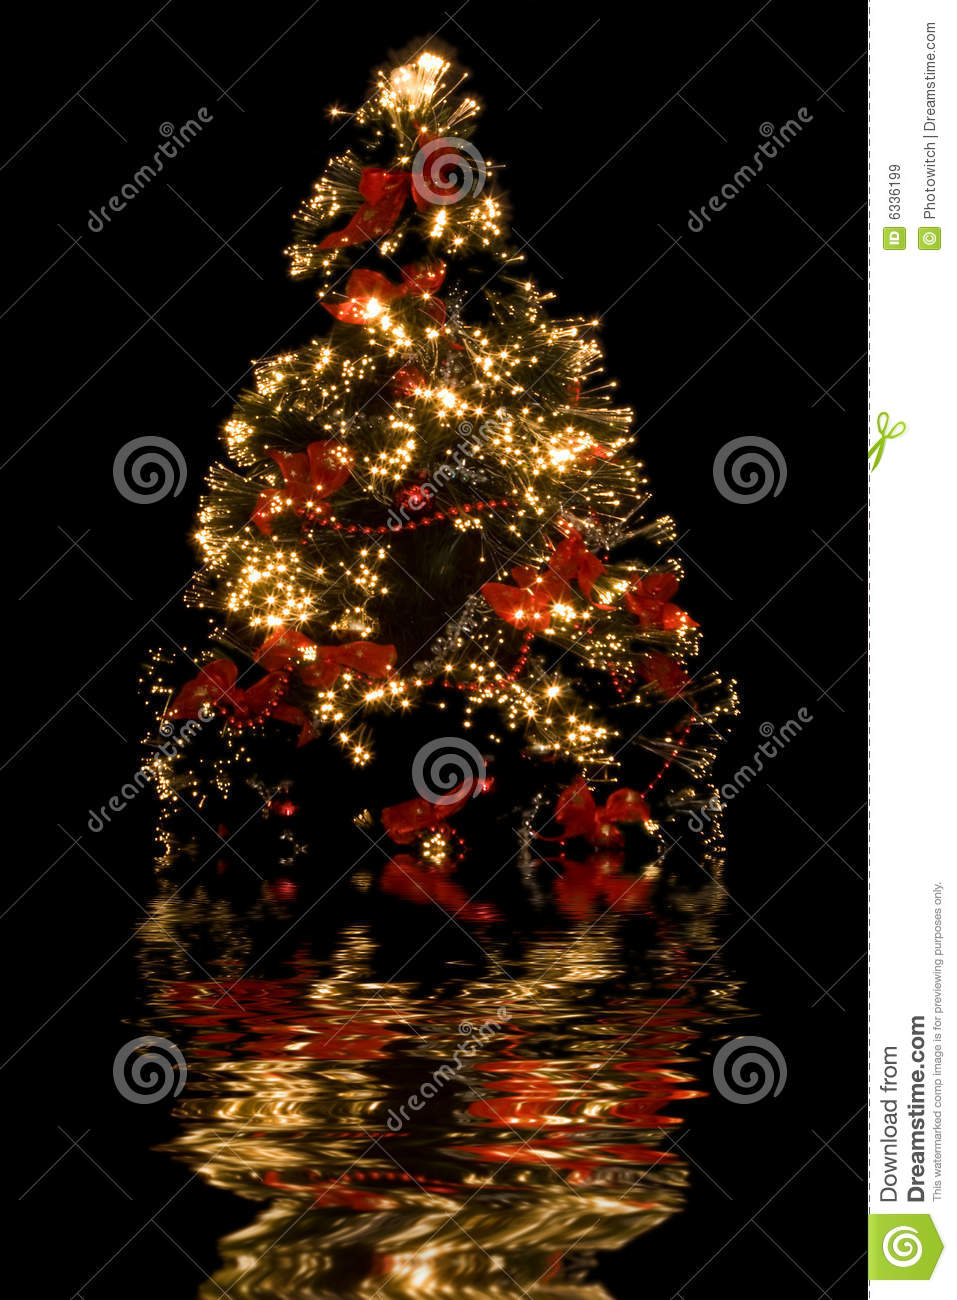 Christmas tree reflection royalty free stock images